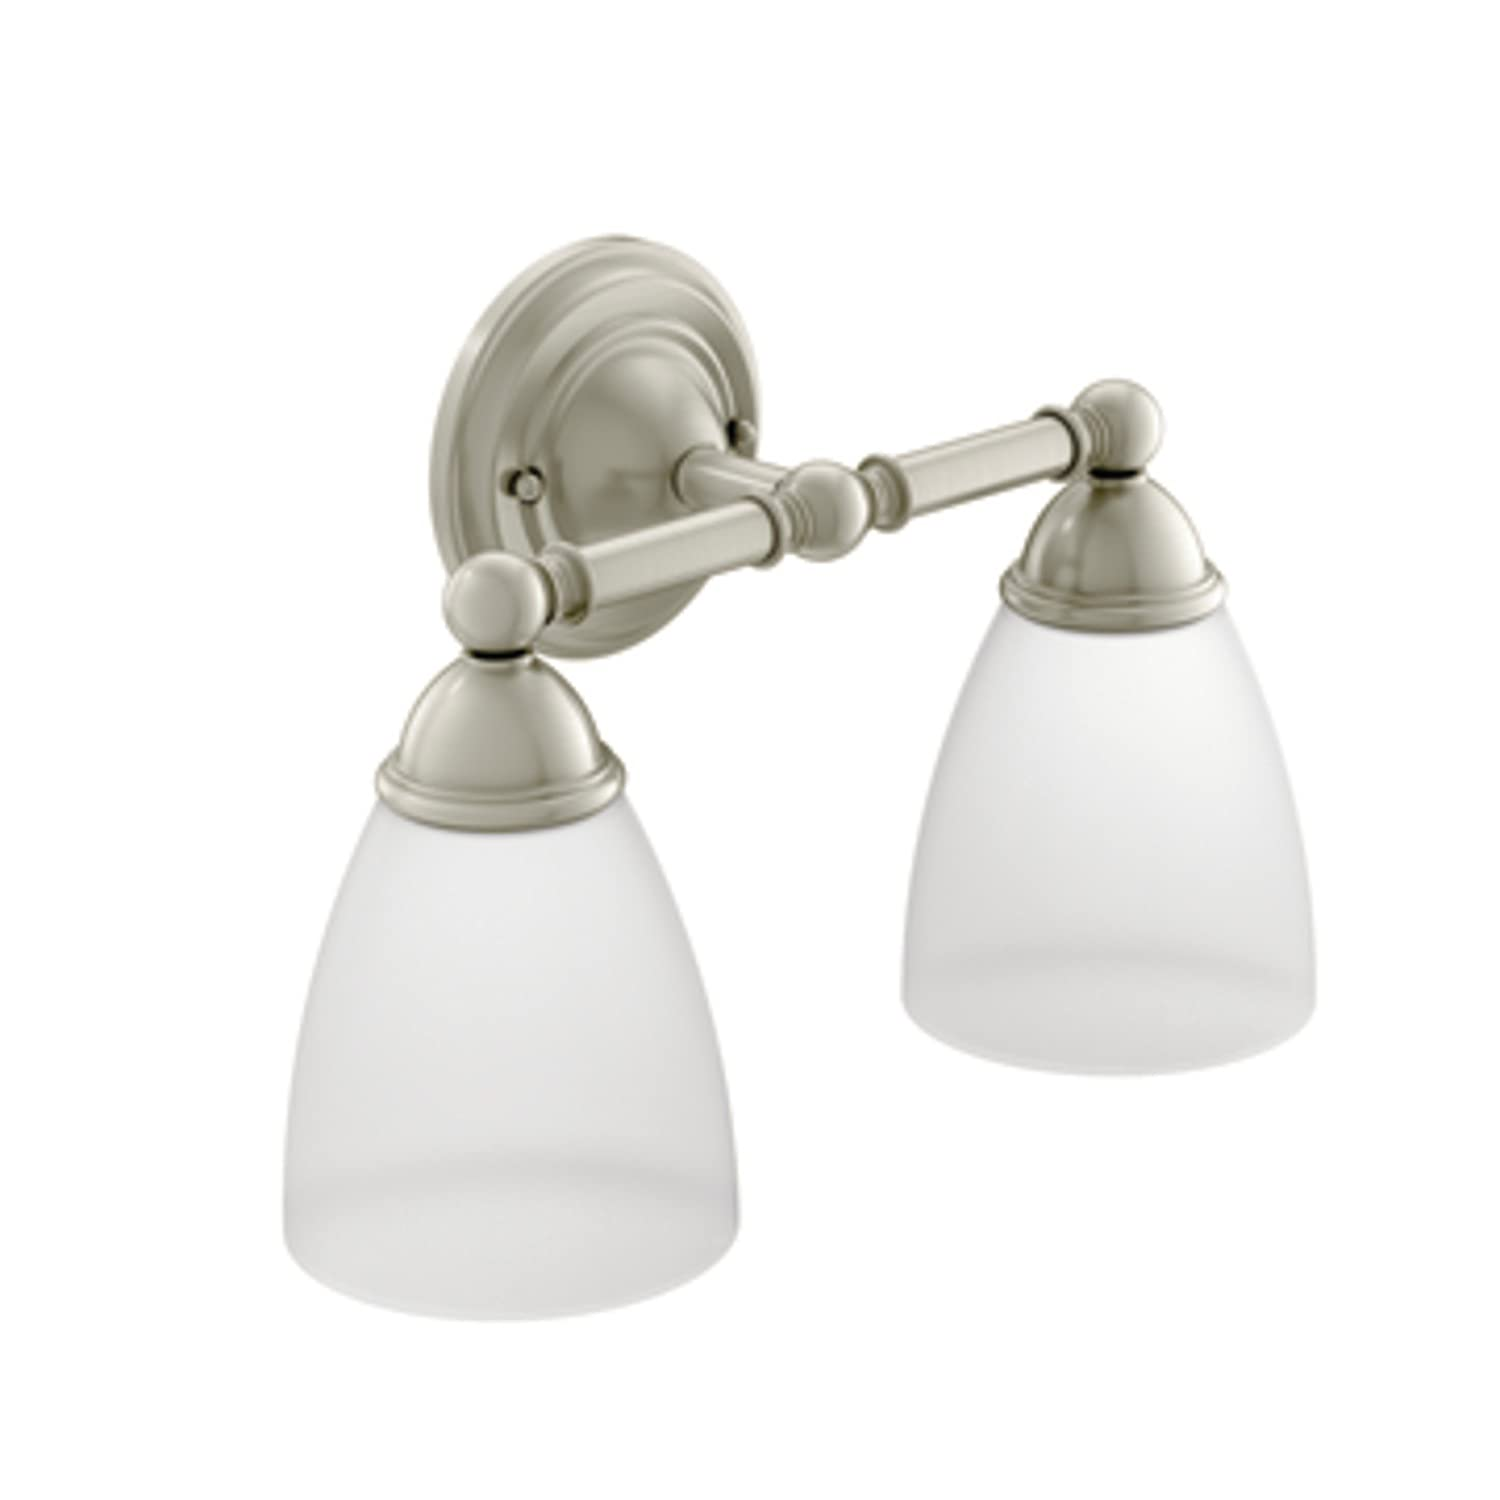 Moen Yb2262ch Brantford Bath Lighting Chrome Bathroom Hardware Amazon Com